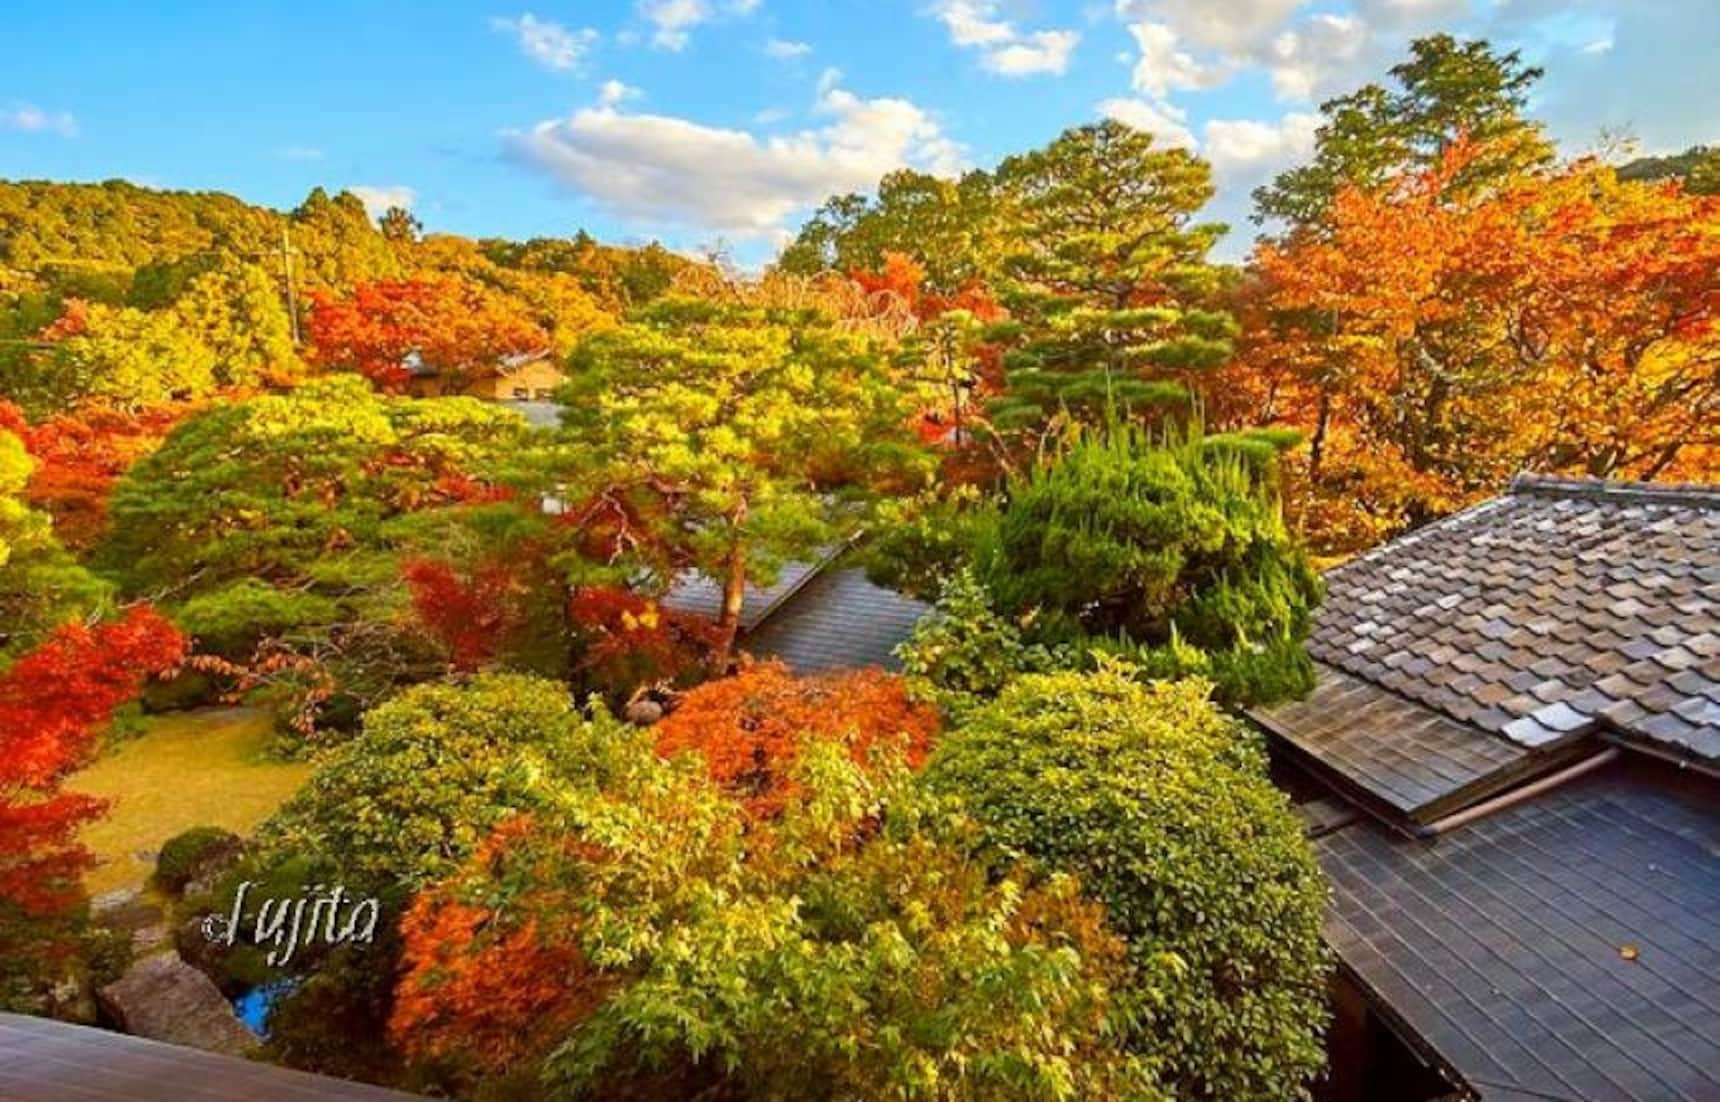 Stay at These Inns & Get the Kyoto Experience